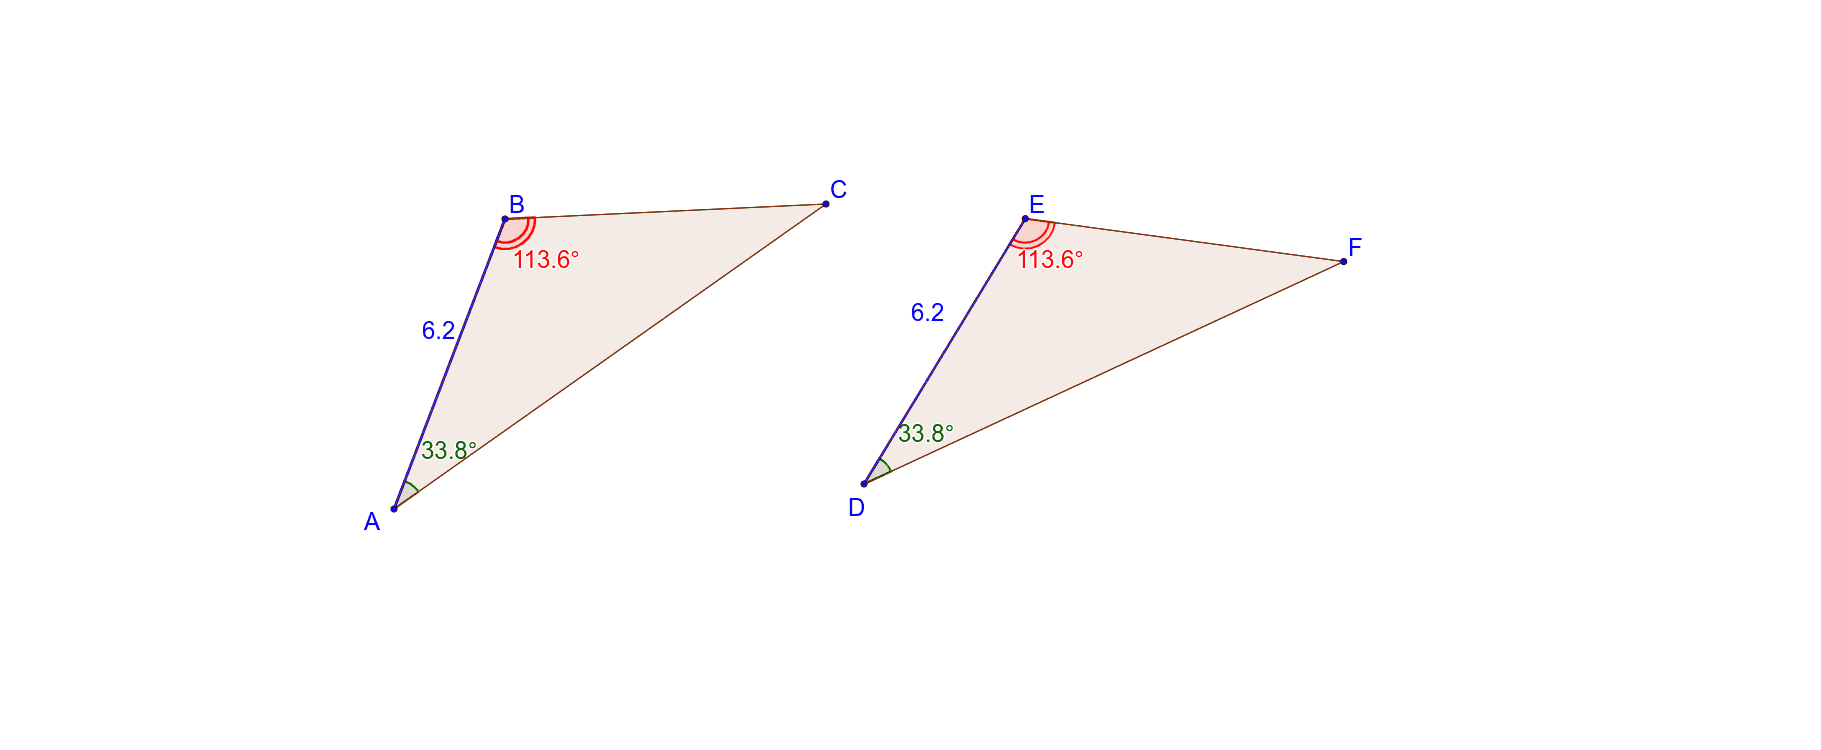 Drag any point on triangle ABC to resize the triangle. Study what happens to triangle DEF when you resize triangle ABC. Also try to coincide (put one triangle on top of the other) and see if they match up. Press Enter to start activity